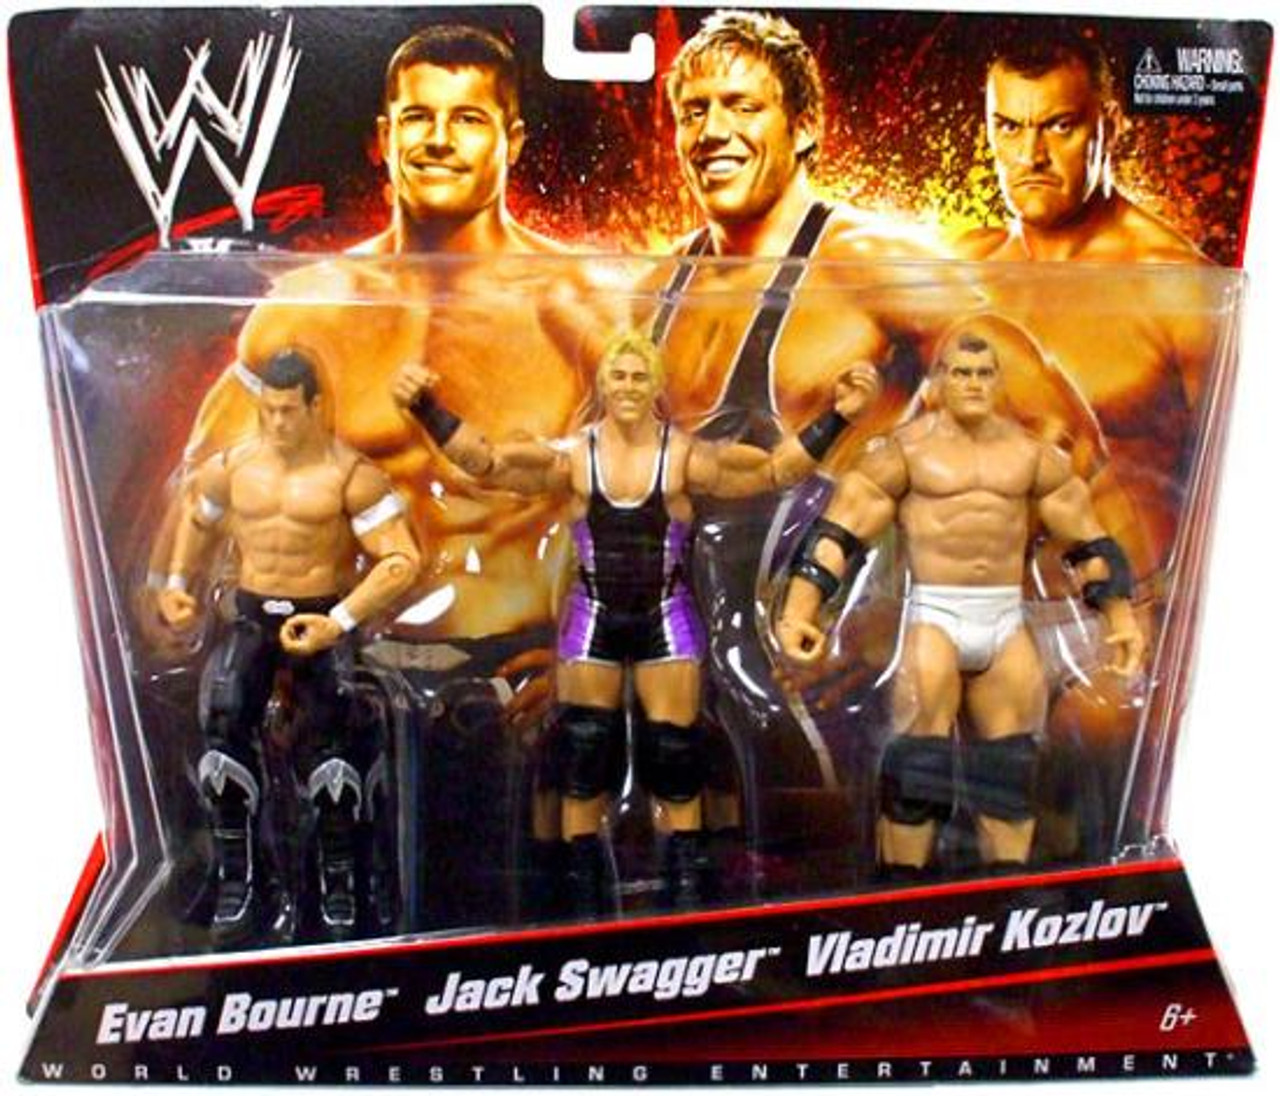 WWE Wrestling Evan Bourne, Jack Swagger & Vladimir Kozlov Exclusive Action Figure 3-Pack